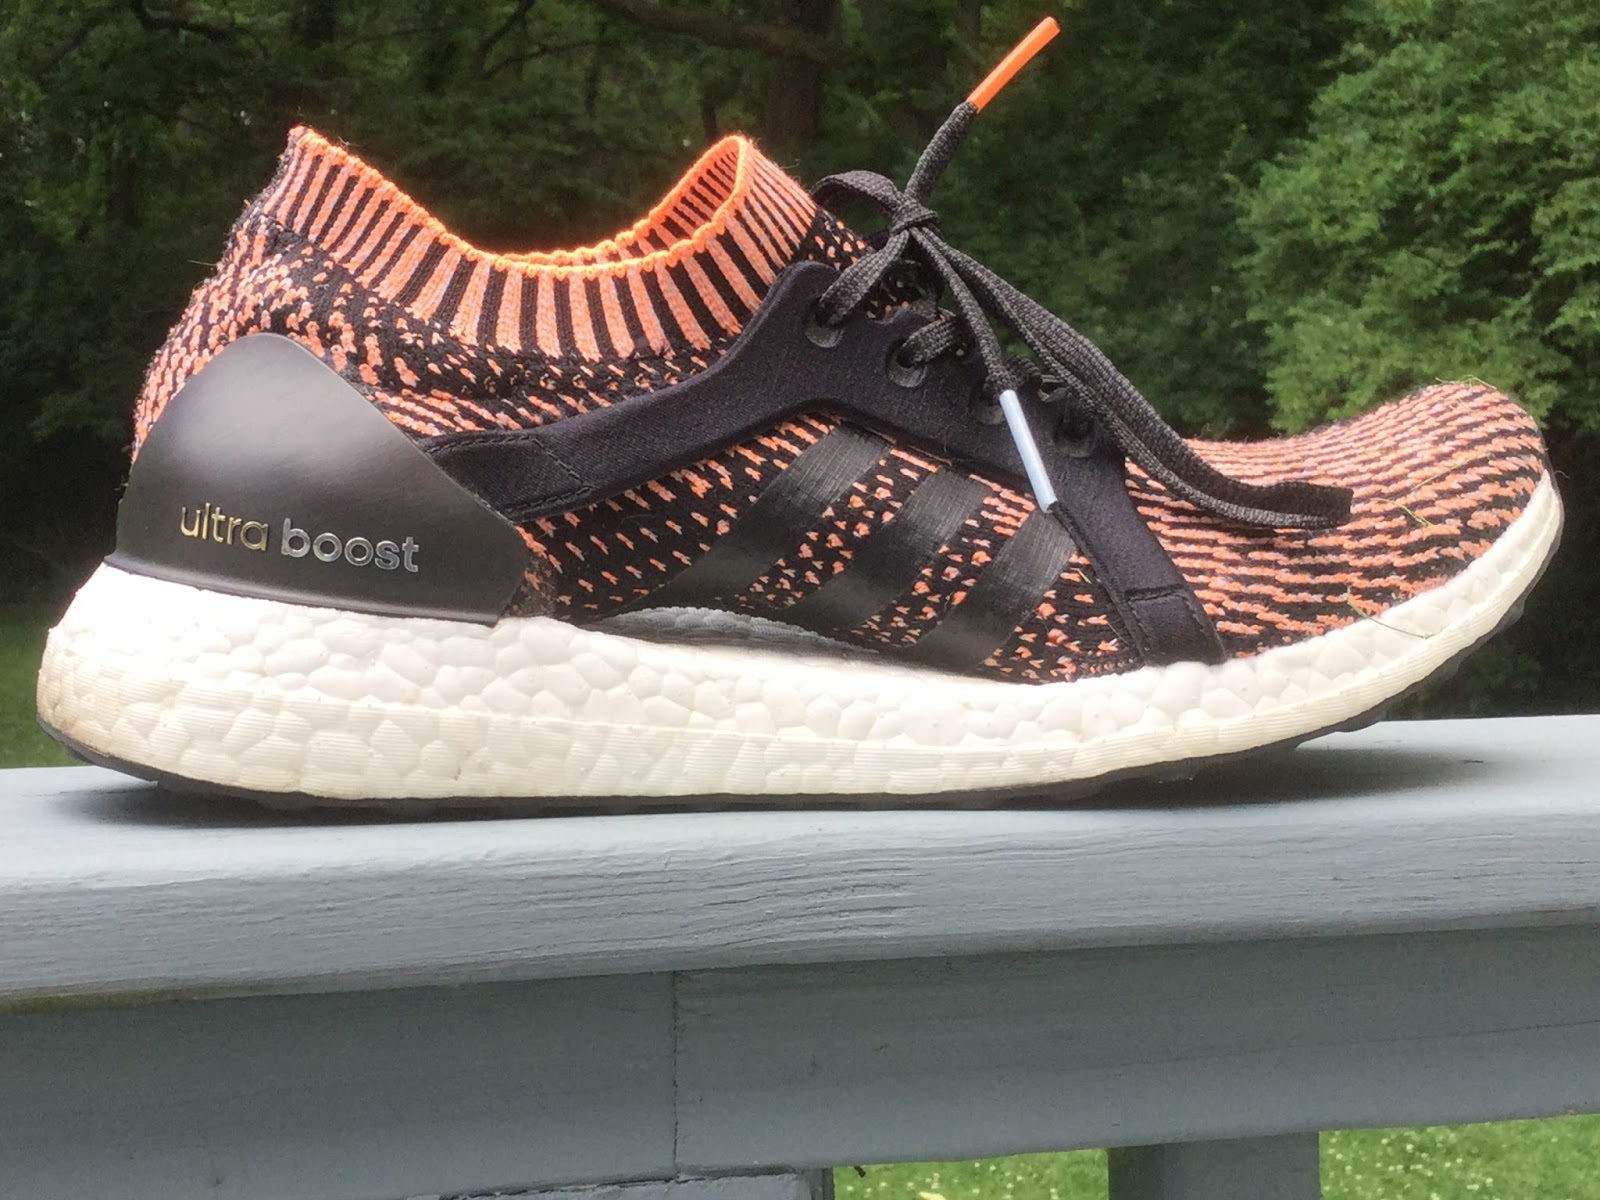 884f83022 ... UltraBoost X. 1st impression  These look like minimal shoes. They came  with a sock-upper glued to a running shoe sole which definitely was not  minimal ...